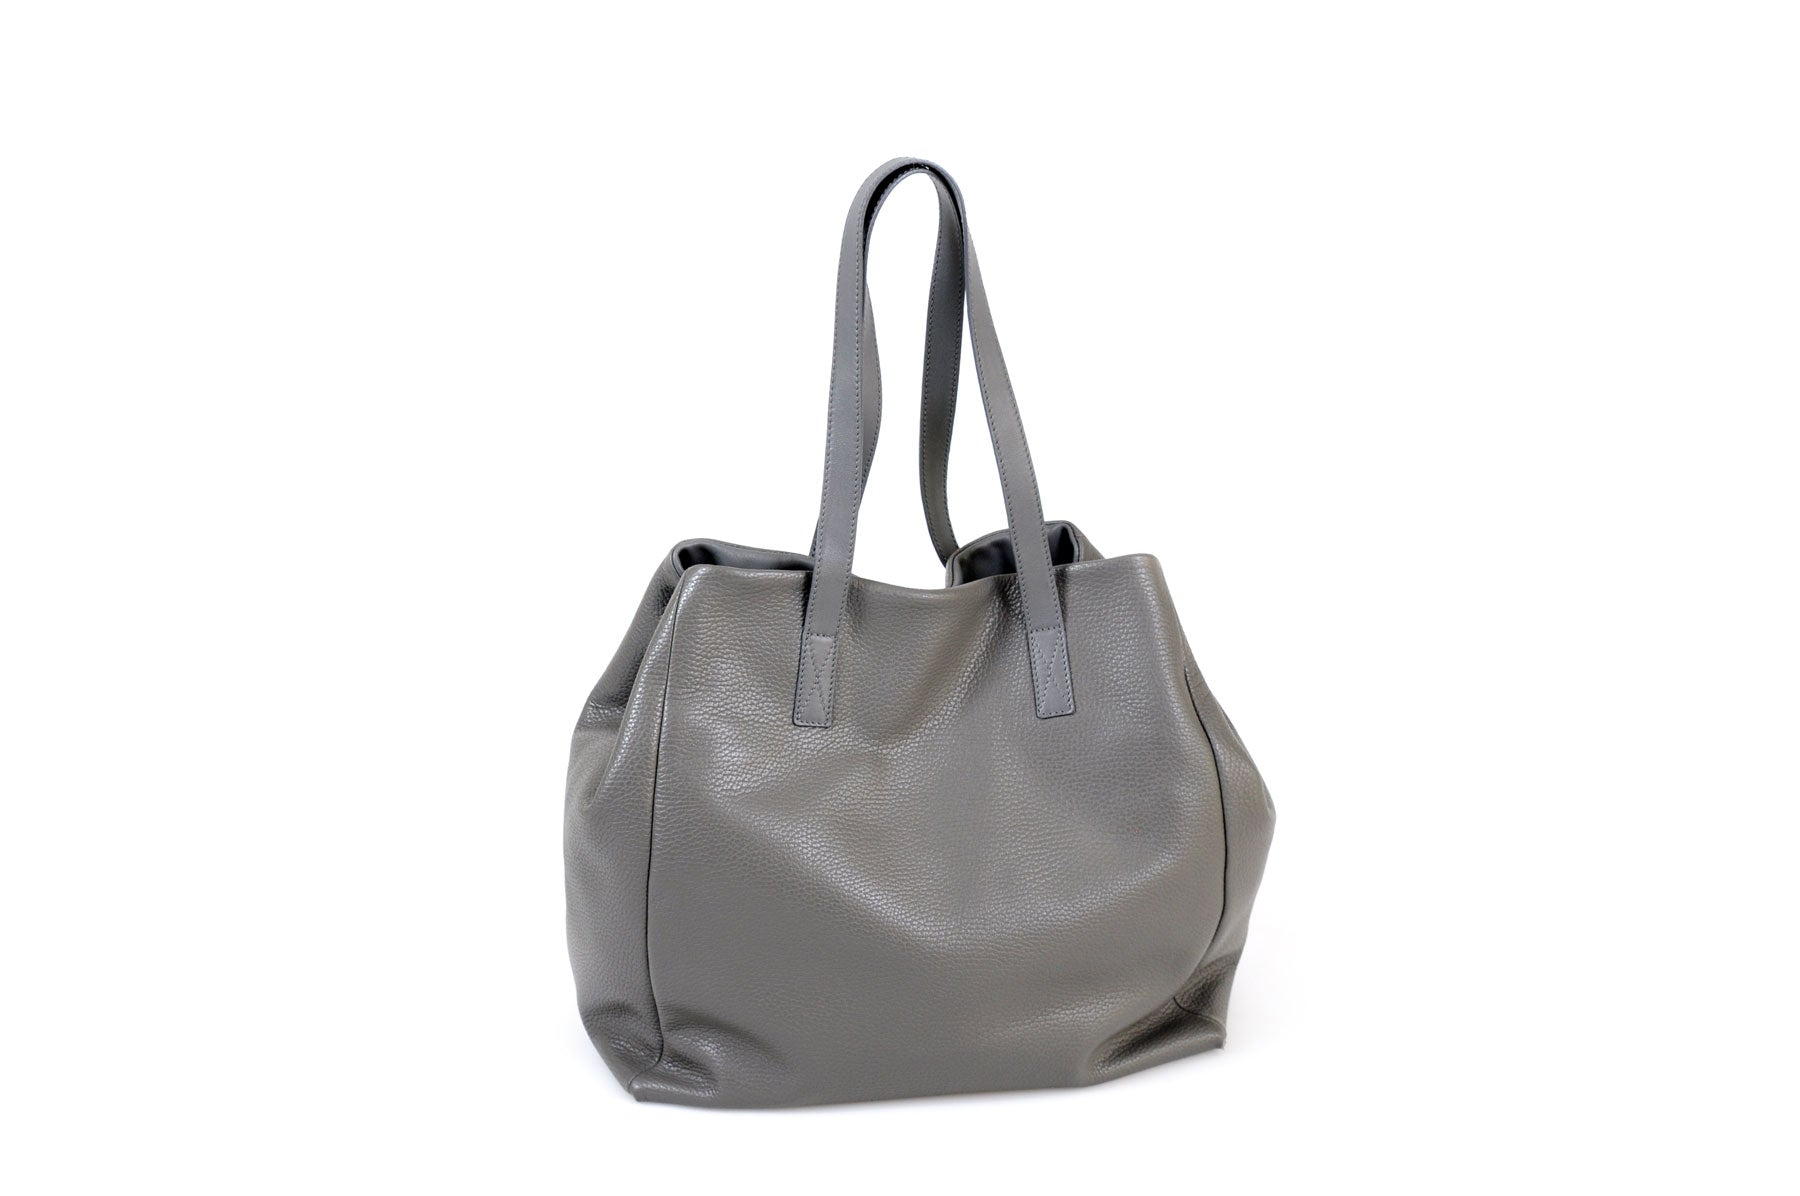 Handmade Italian Leather Shopping Tote - Balzano - Pompeii Grey